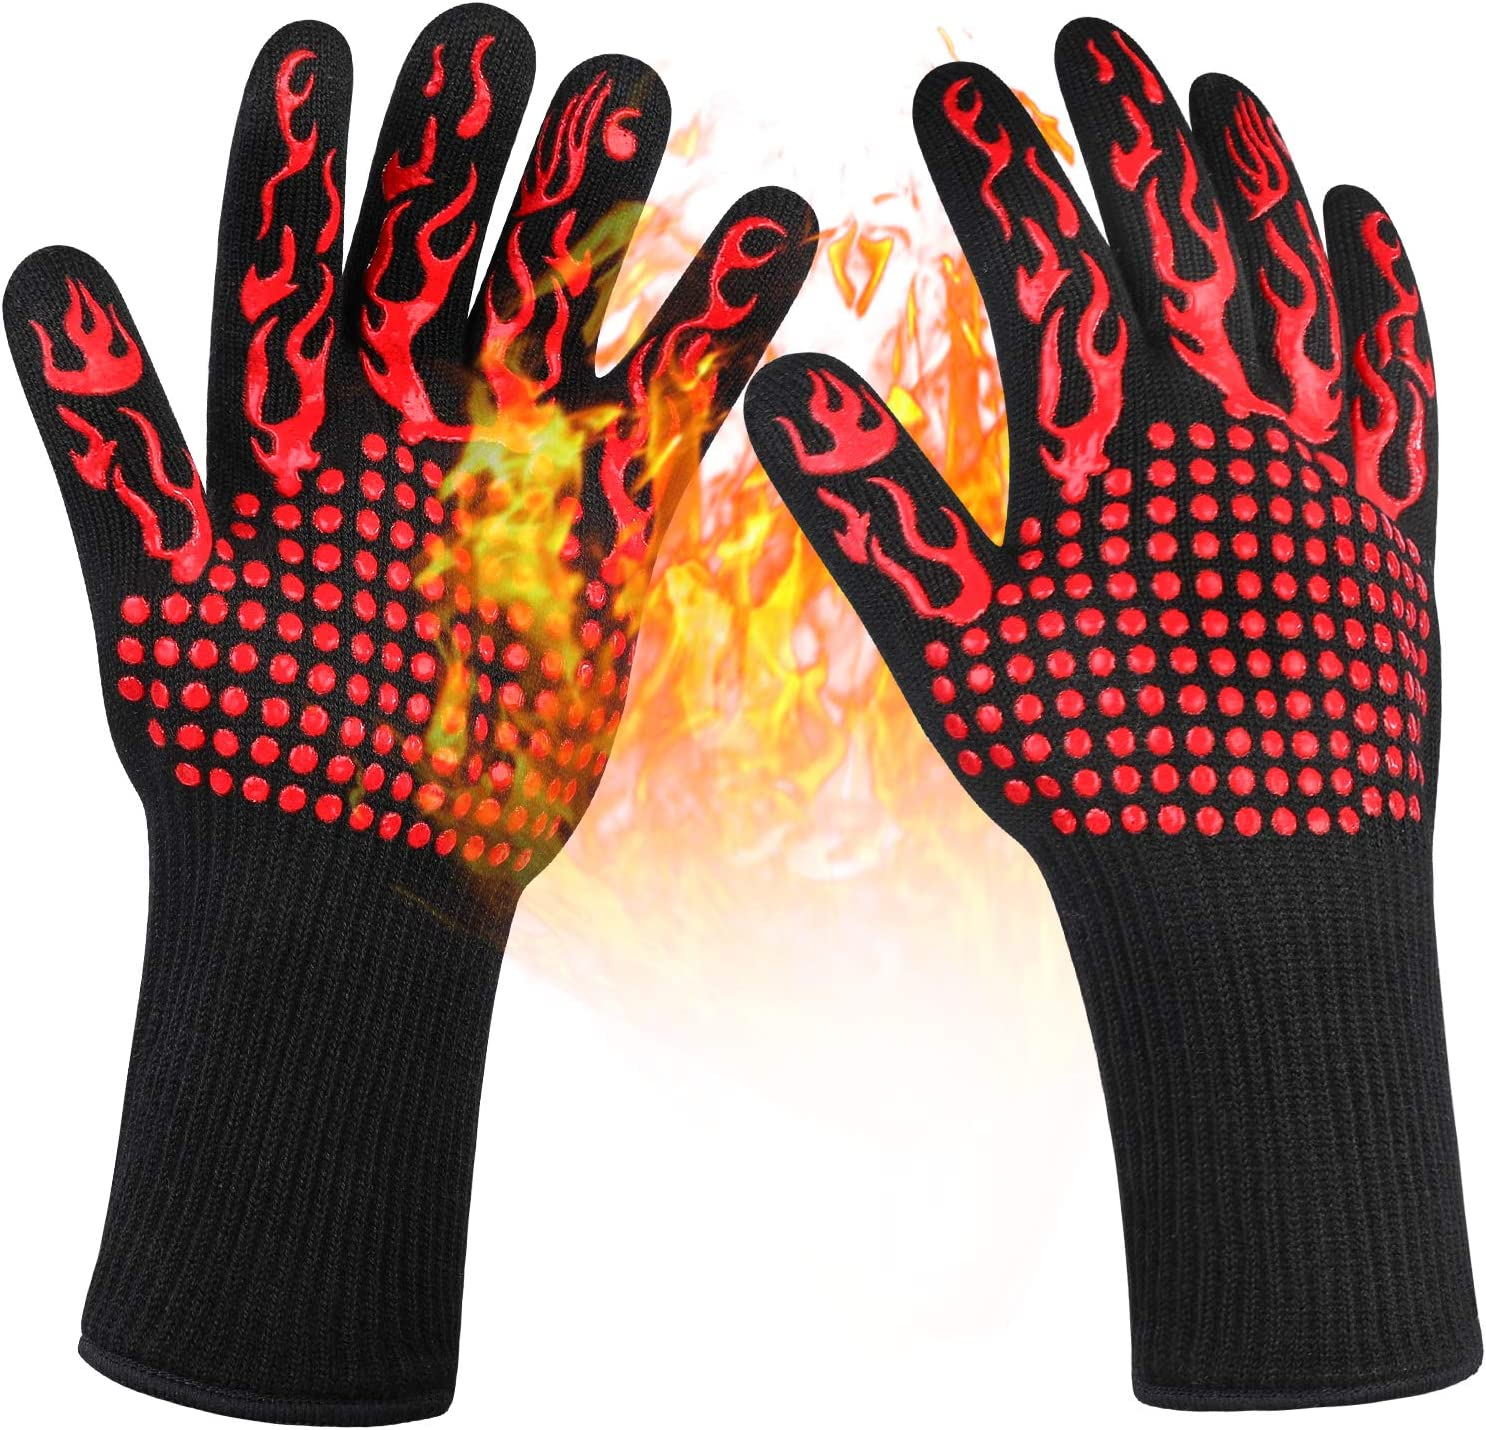 Grilling Gloves 1472°F Heat Resistant Gloves,Food Grade Kitchen BBQ Gloves,Silicone Non-Slip Grill Gloves for Barbecue,Cooking,Baking,Welding,Cutting